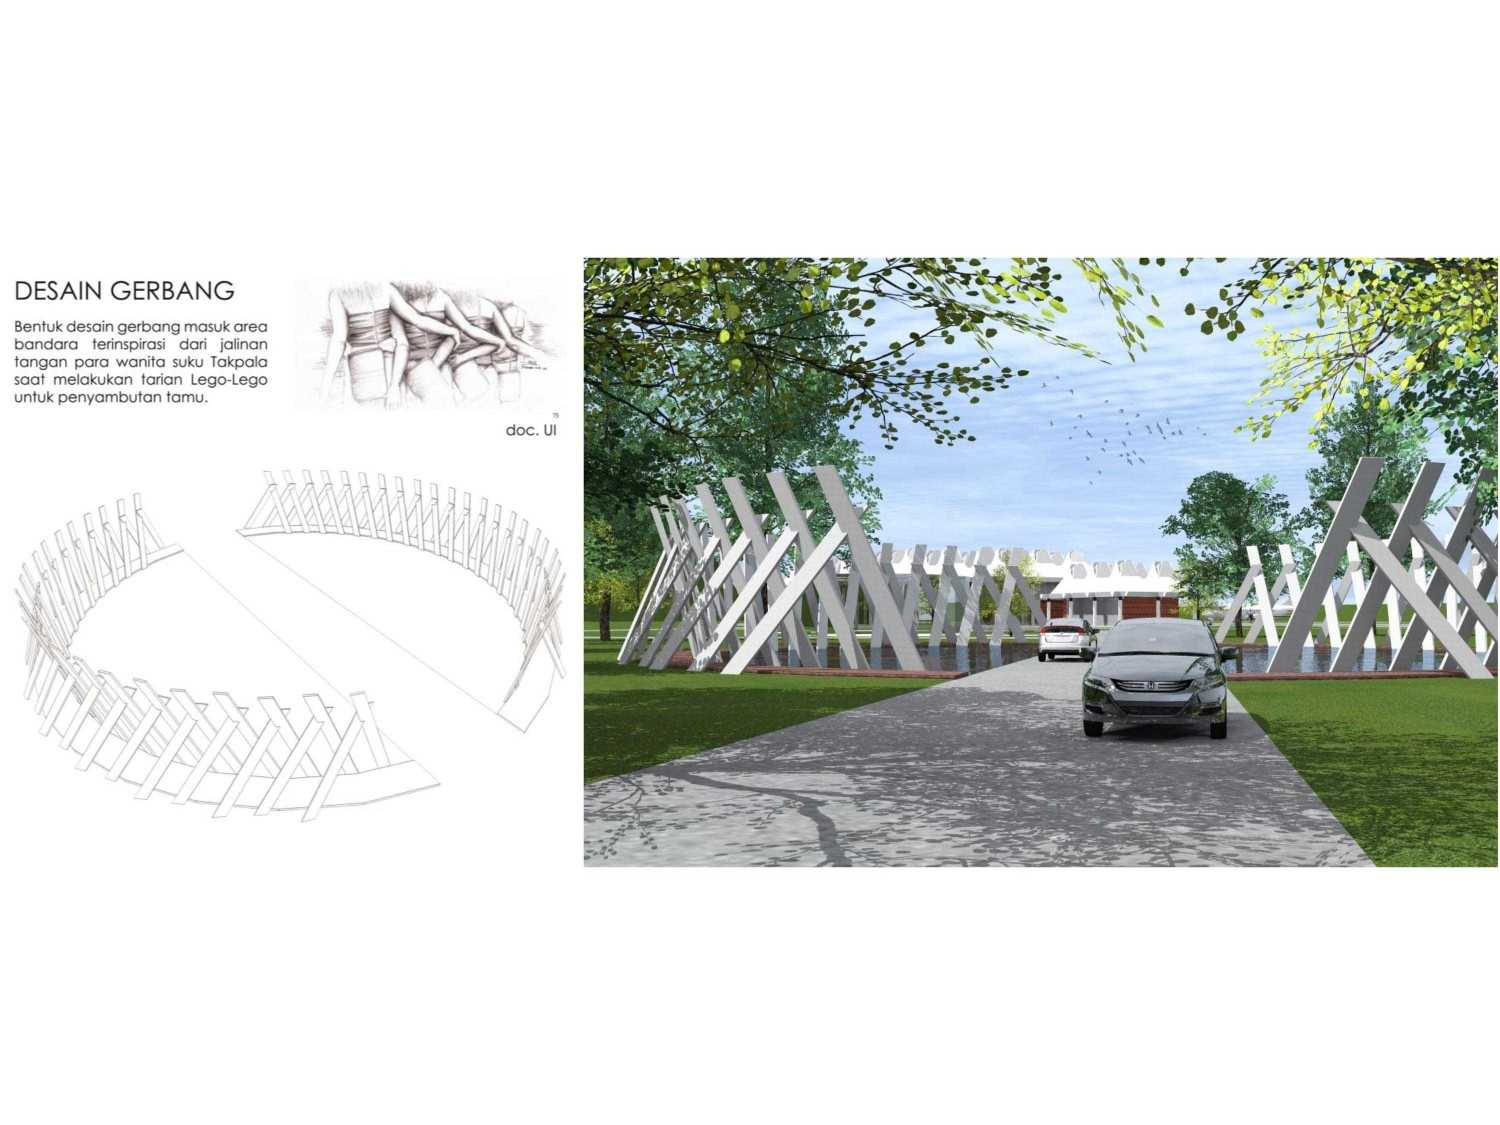 Monokroma Architect Mali Alor Airport  Alor, Ntt Alor, Ntt 14-Gate-Design Kontemporer 14824